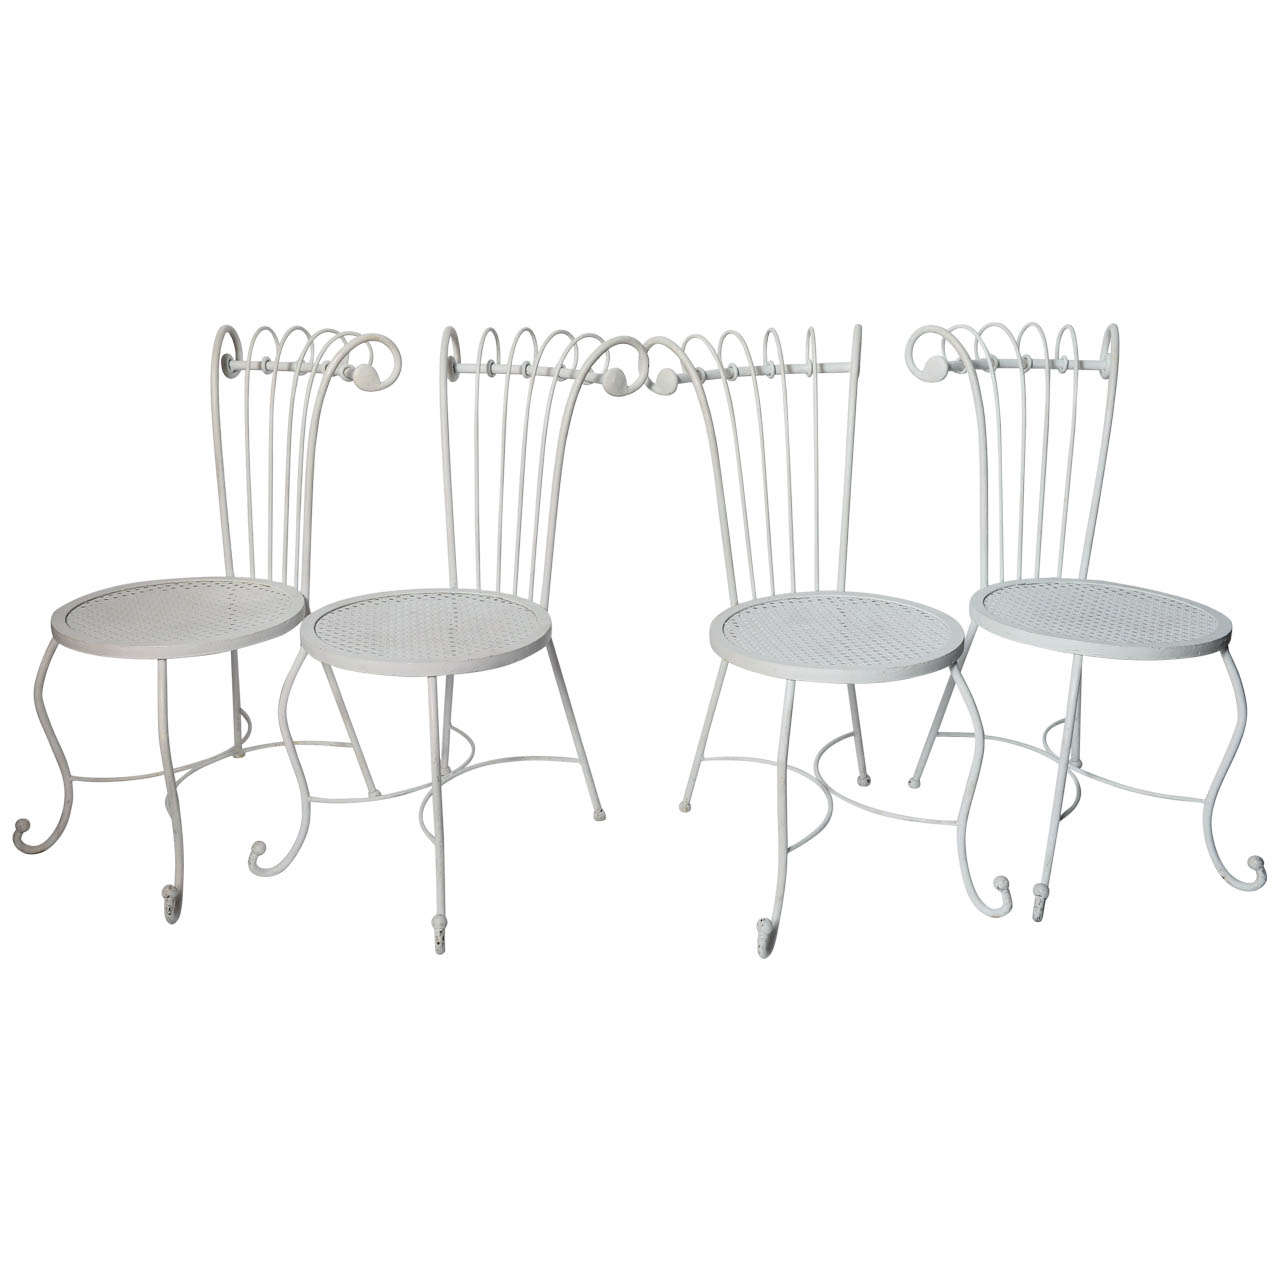 Set Of Four 1940 S Hollywood Regency White Wrought Iron Chairs For